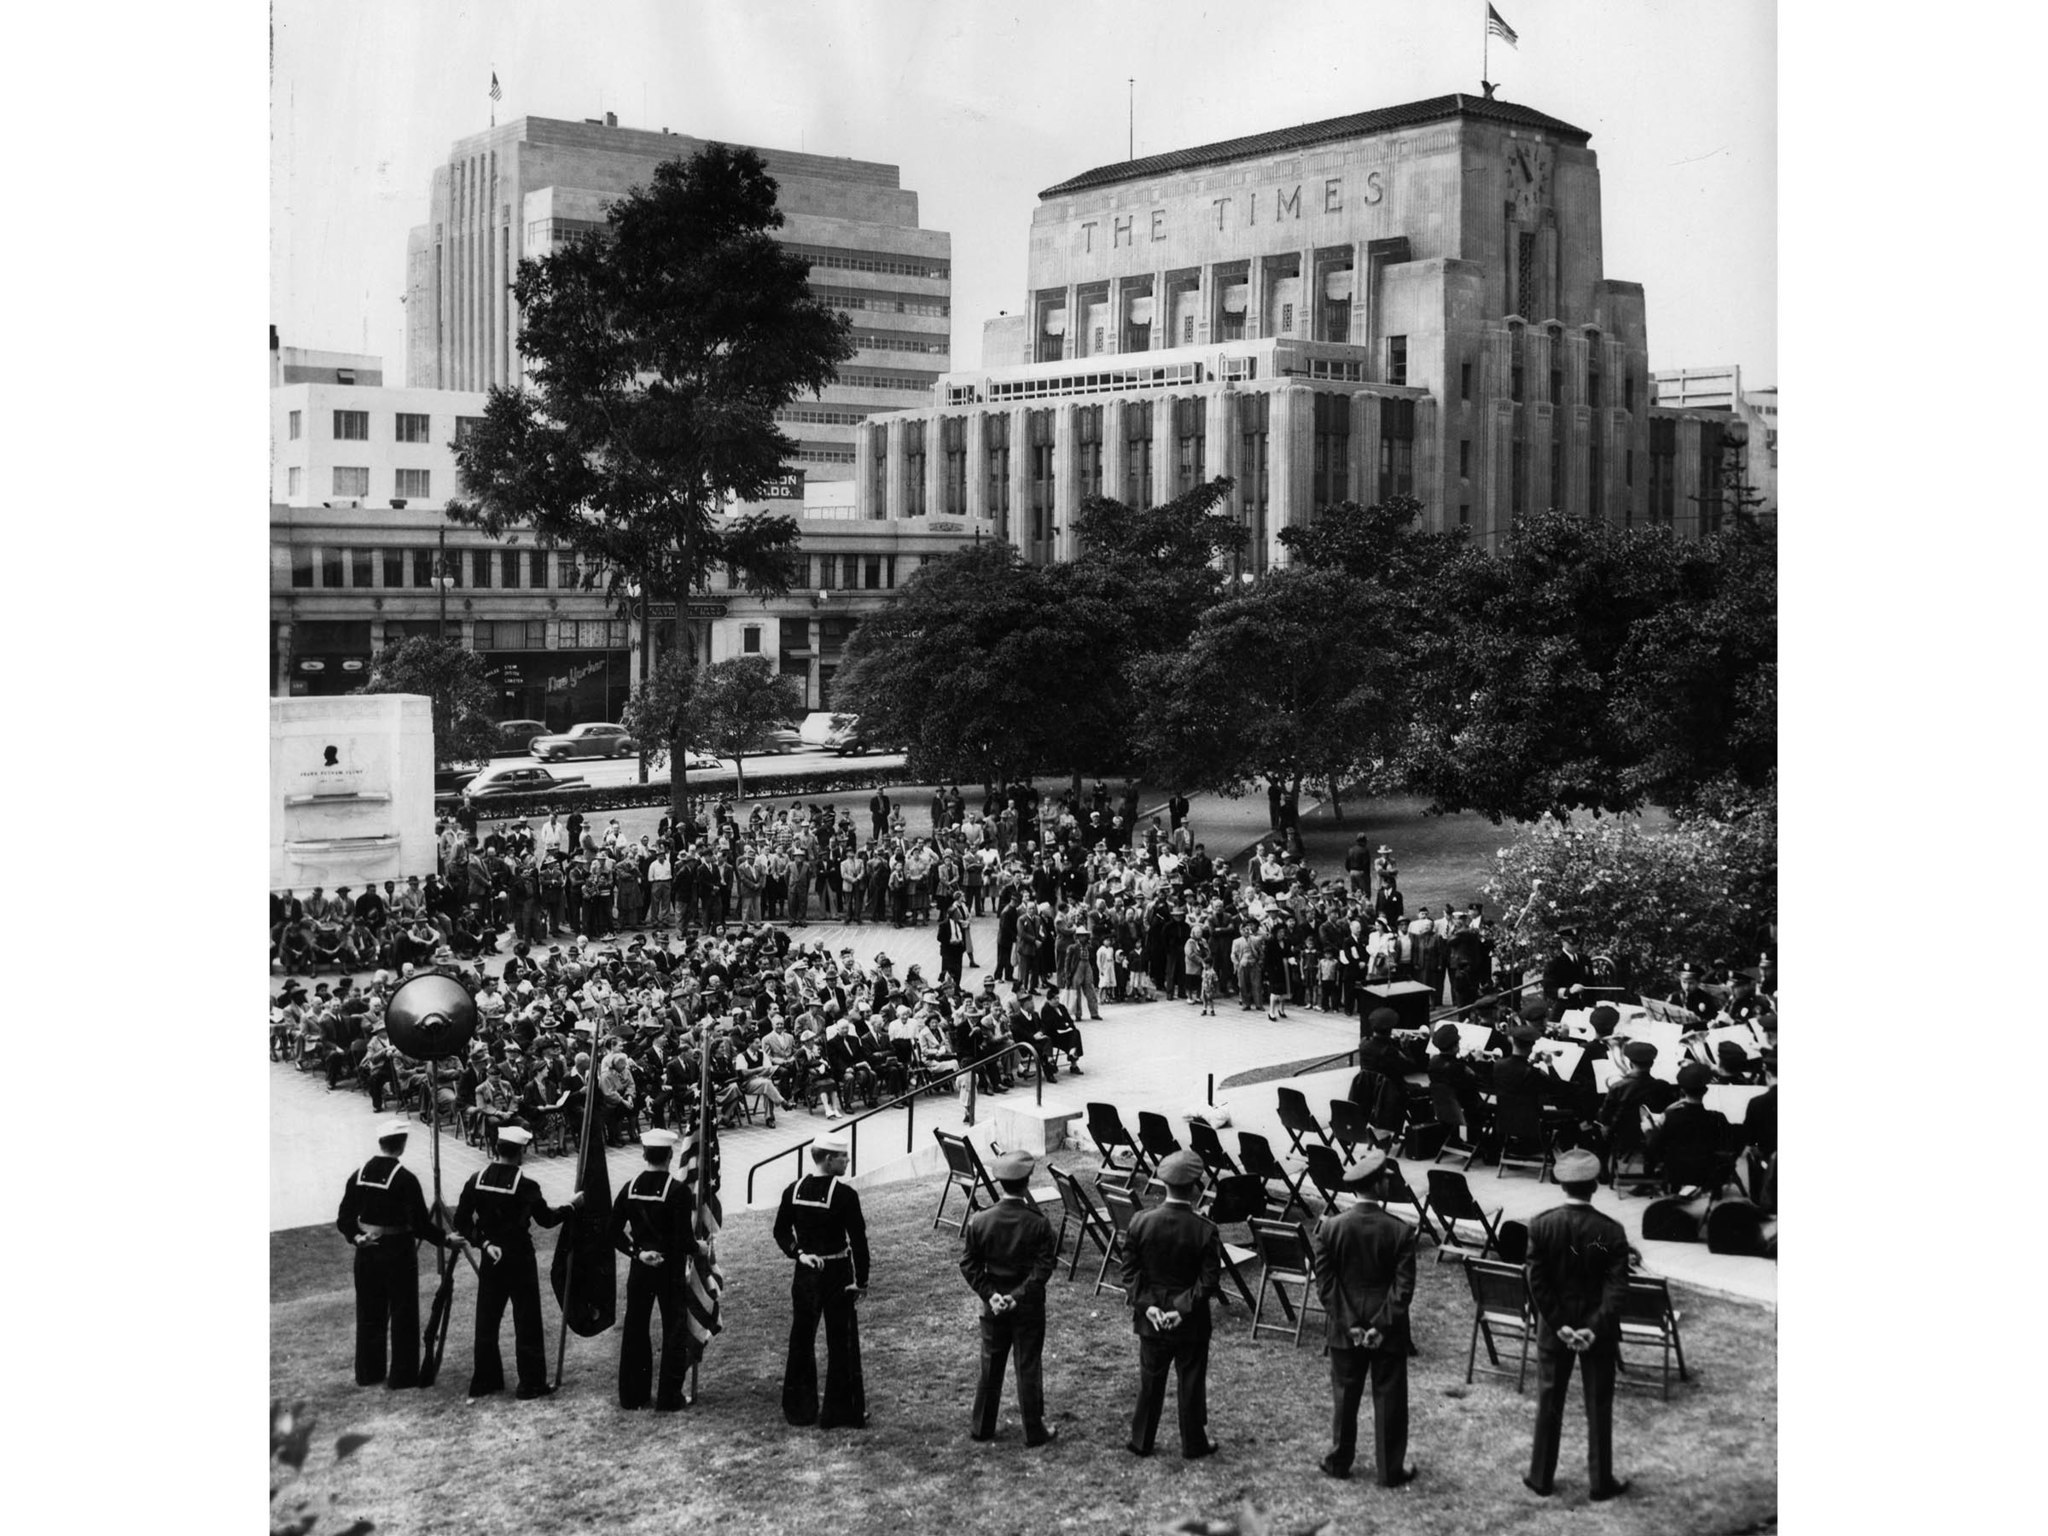 Nov. 12, 1951: Armistice Day activities conducted at Los Angeles City Hall with the Los Angeles Time